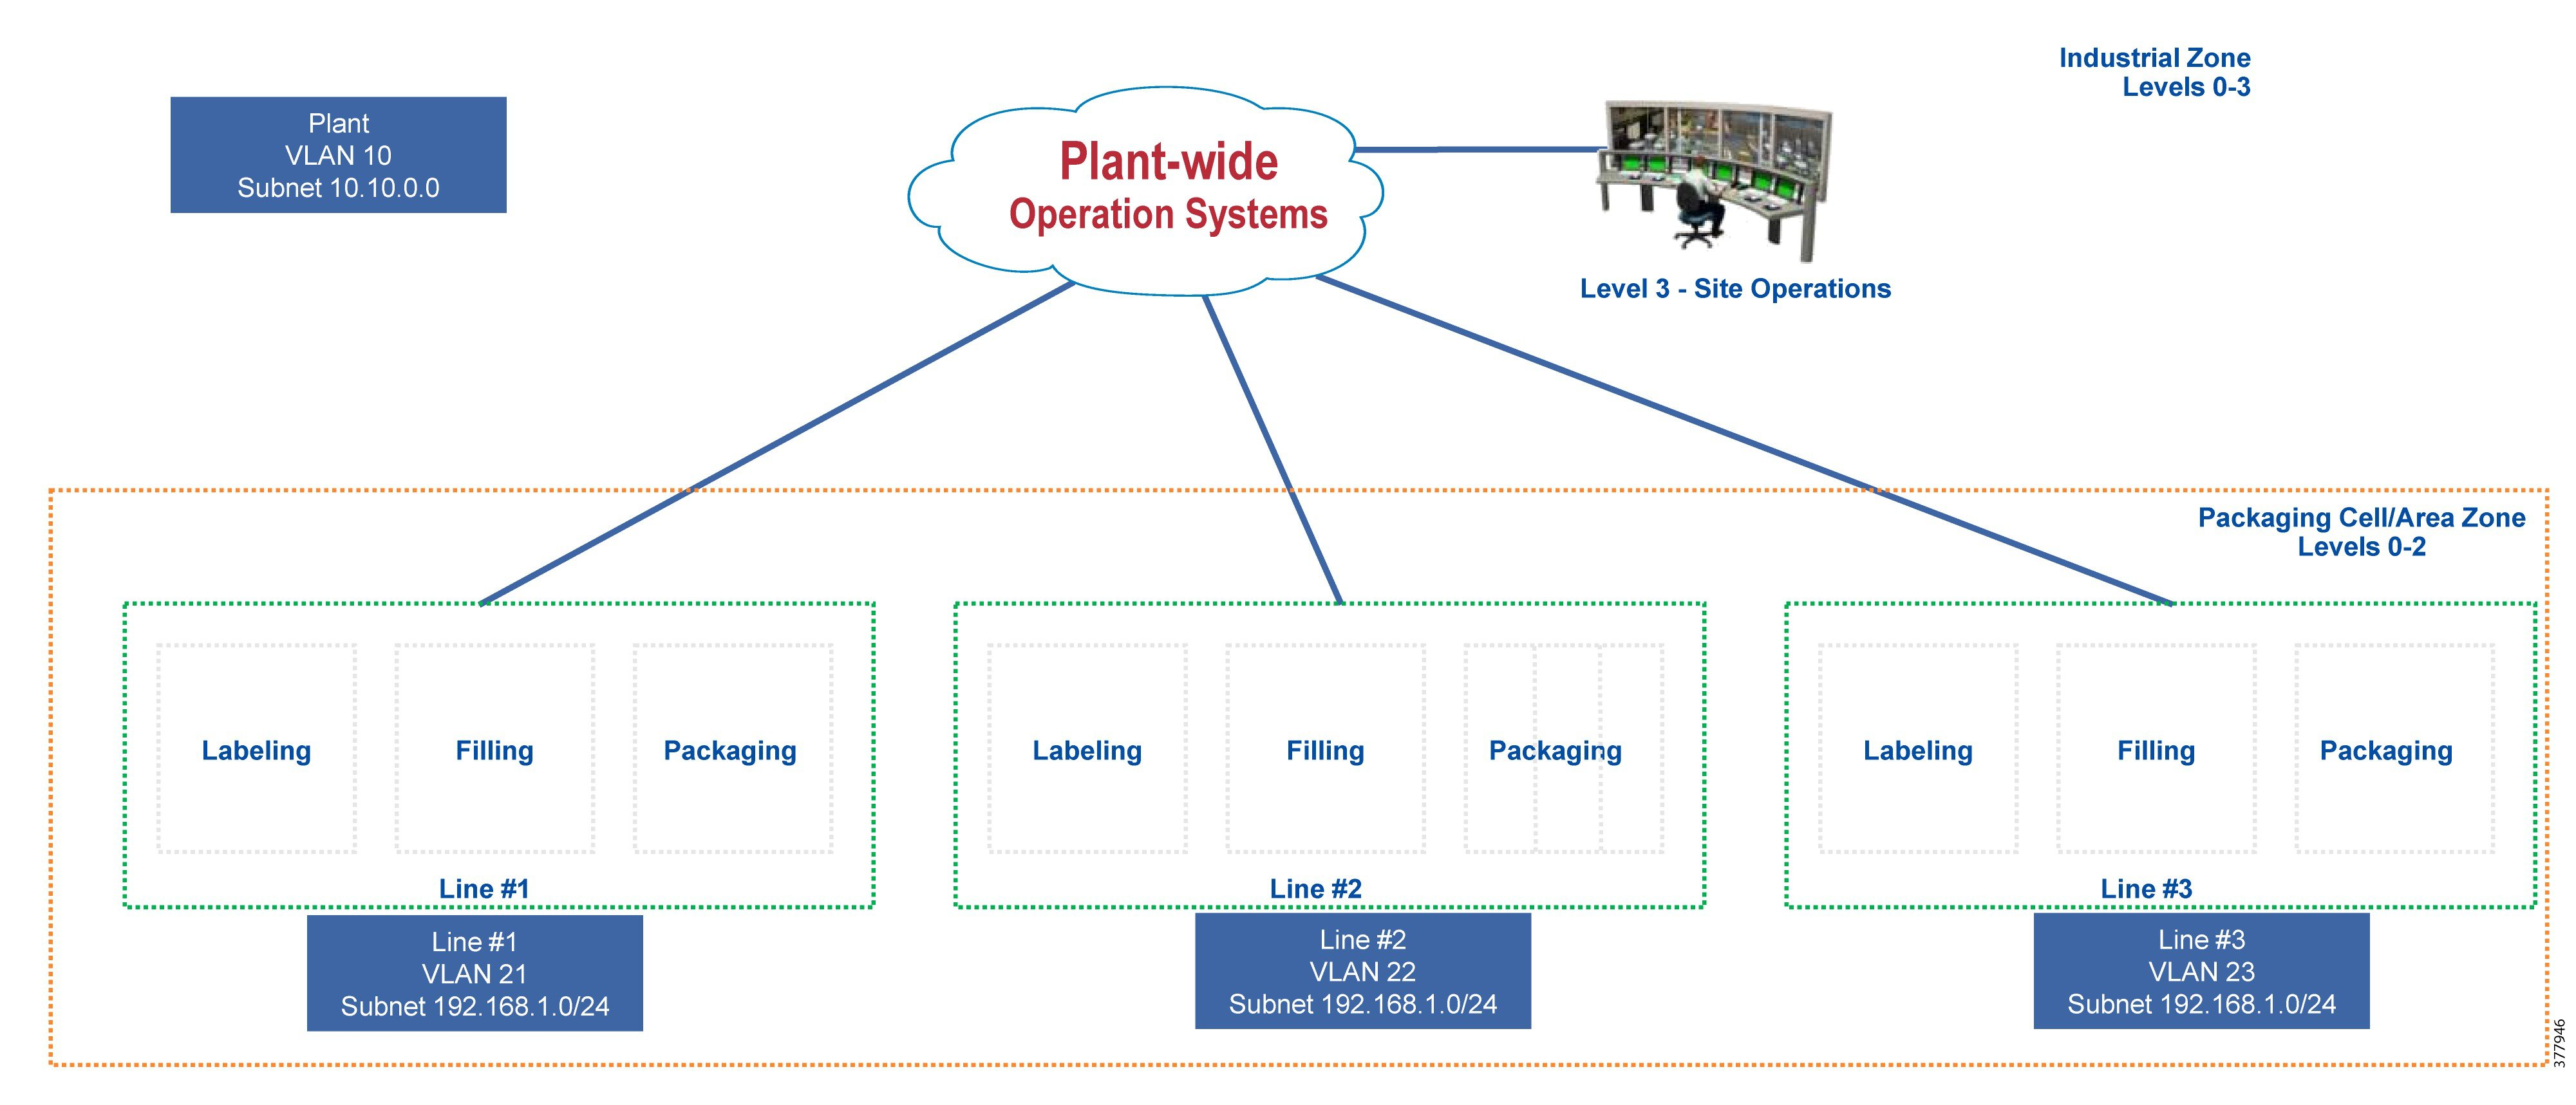 Oem Networking Within A Converged Plantwide Ethernet Architecture Level 0 Block Diagram Zones And Sub Allows Plant Operators To Achieve Scalability Through Building Approach Machine Or Skid Are Examples